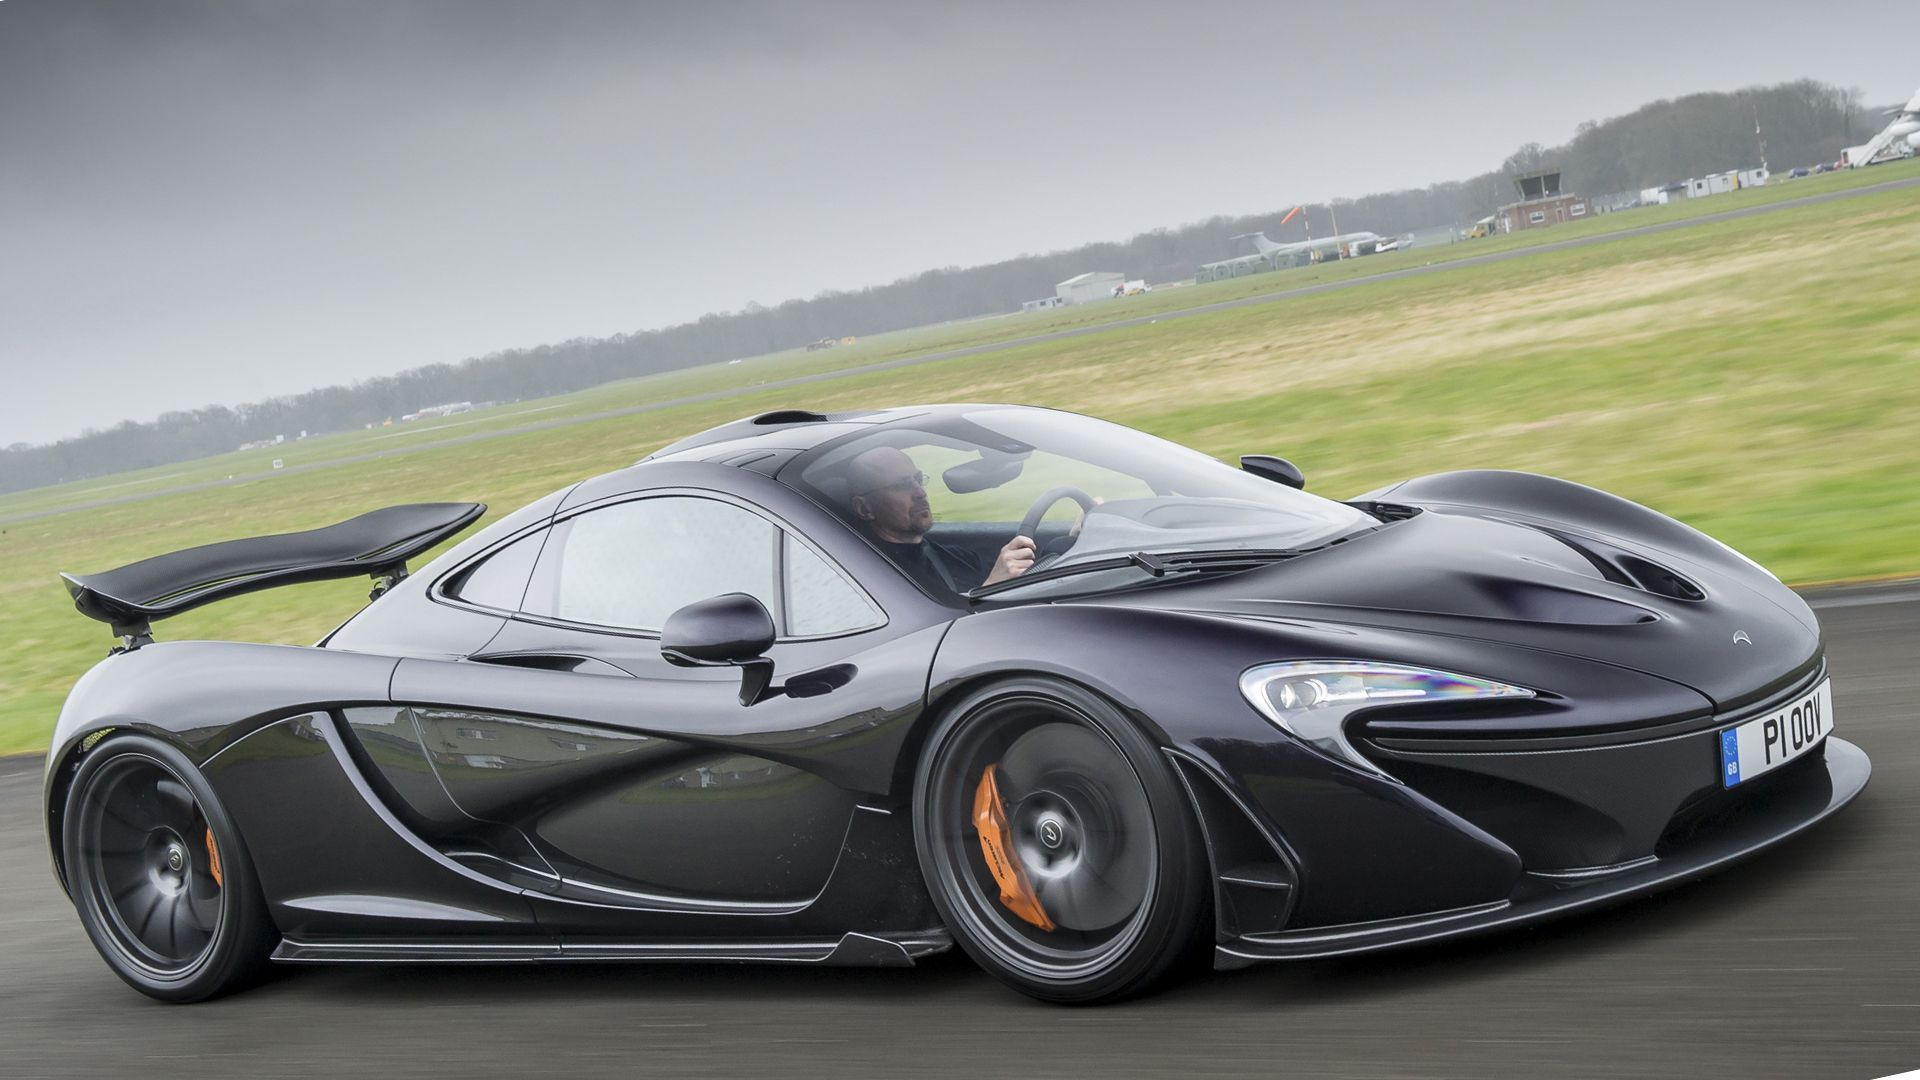 2019 Mclaren P1 Test Drive On Road Mclaren P1 2019 Price 2019 Mclaren 720s Spr Test Drive Review The Ultimate Supercar Mclarens 4 0liter Twinturbo V8livers 7 Mclaren P1 Driving Test Super Cars